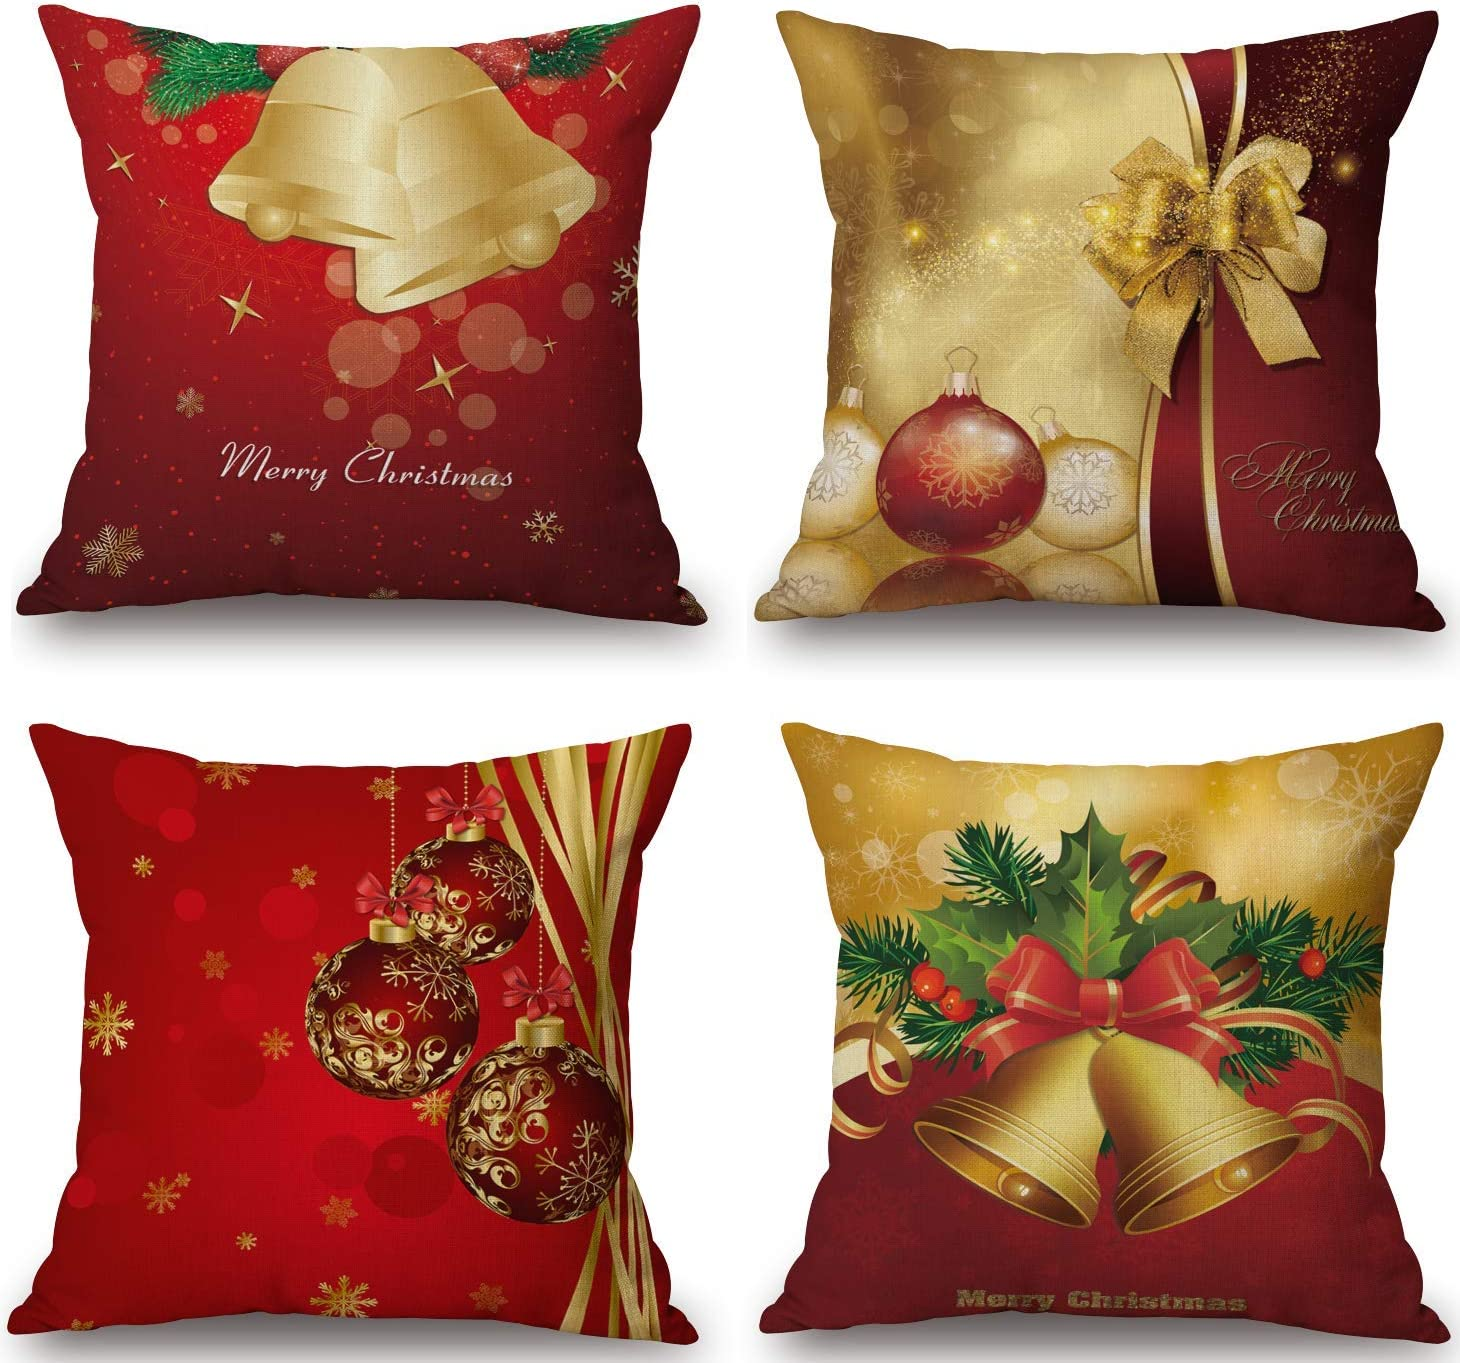 BLUETTEK Merry Christmas Series Cotton Linen Decorative Throw Pillow Covers 18 Inch by 18 Inch (Xmas Bells & Bow)